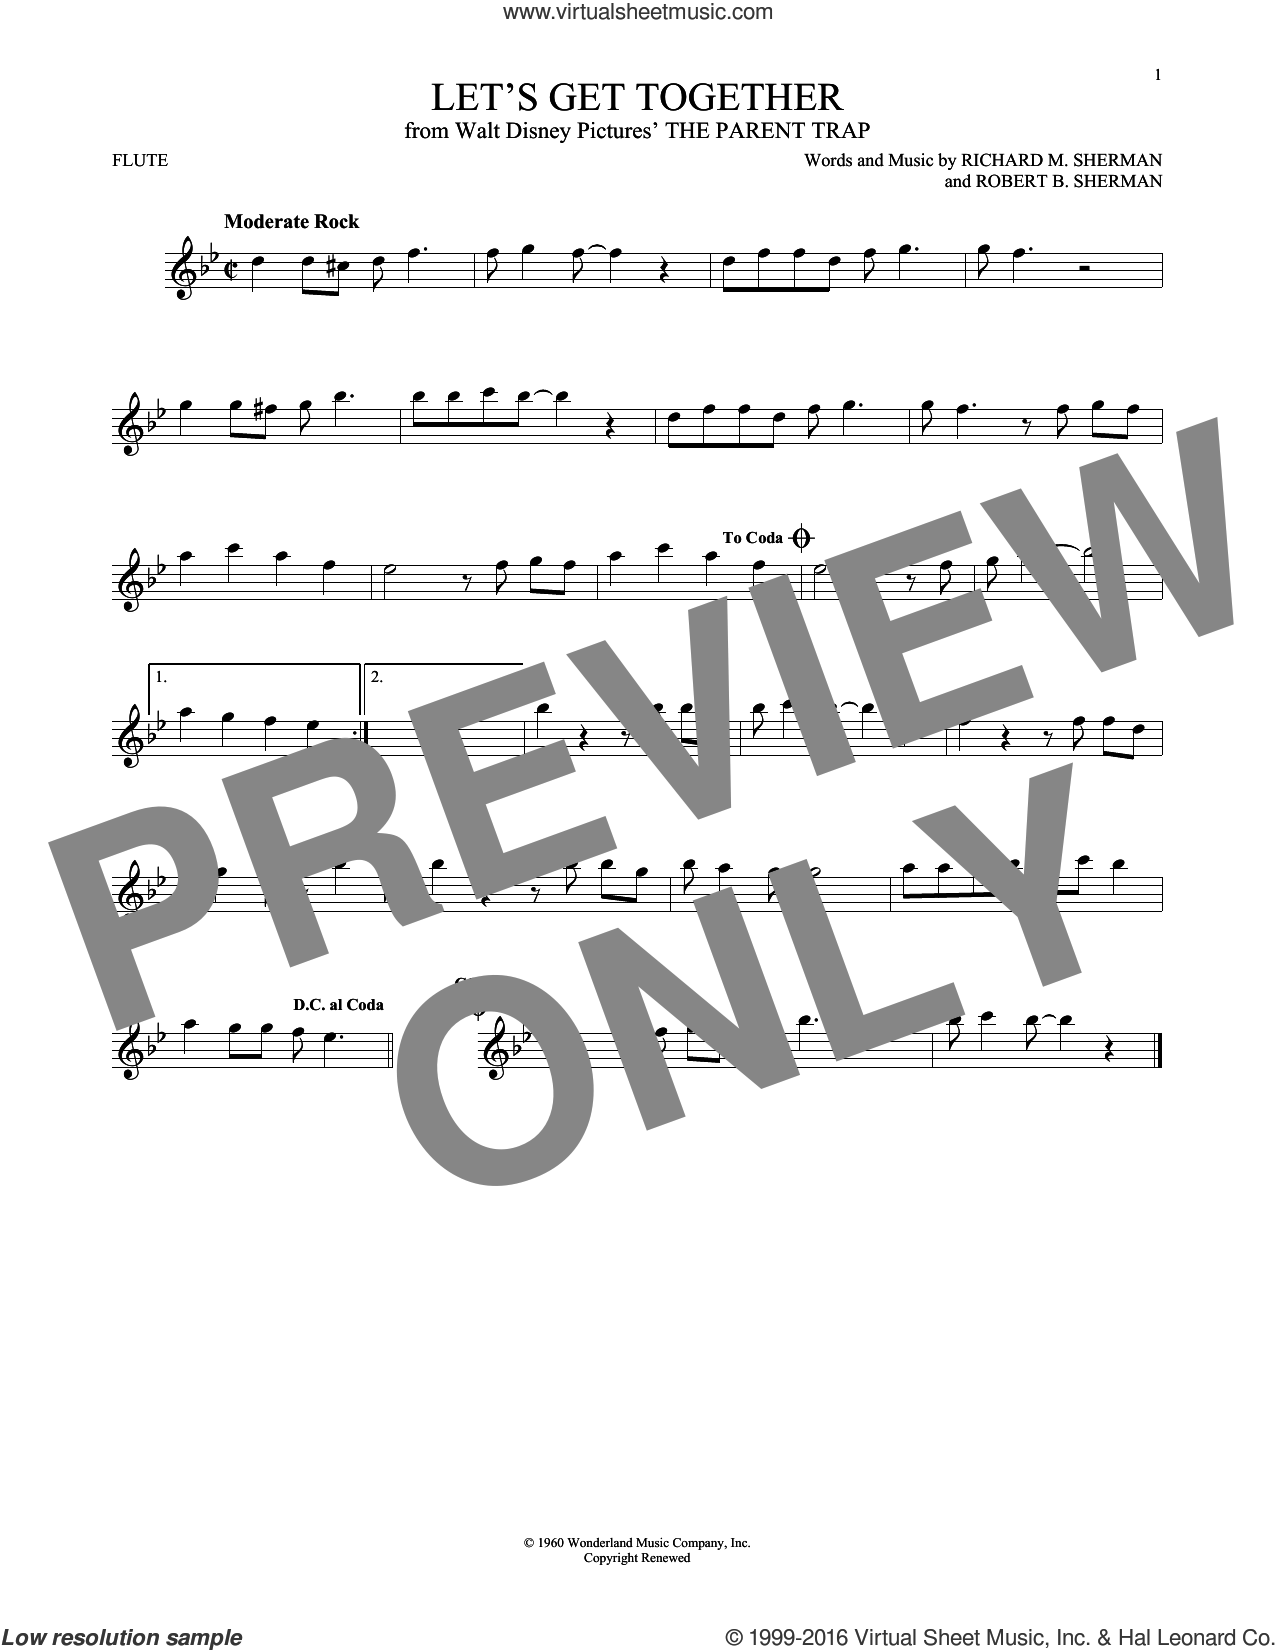 Let's Get Together sheet music for flute solo by Hayley Mills, Richard M. Sherman and Robert B. Sherman. Score Image Preview.